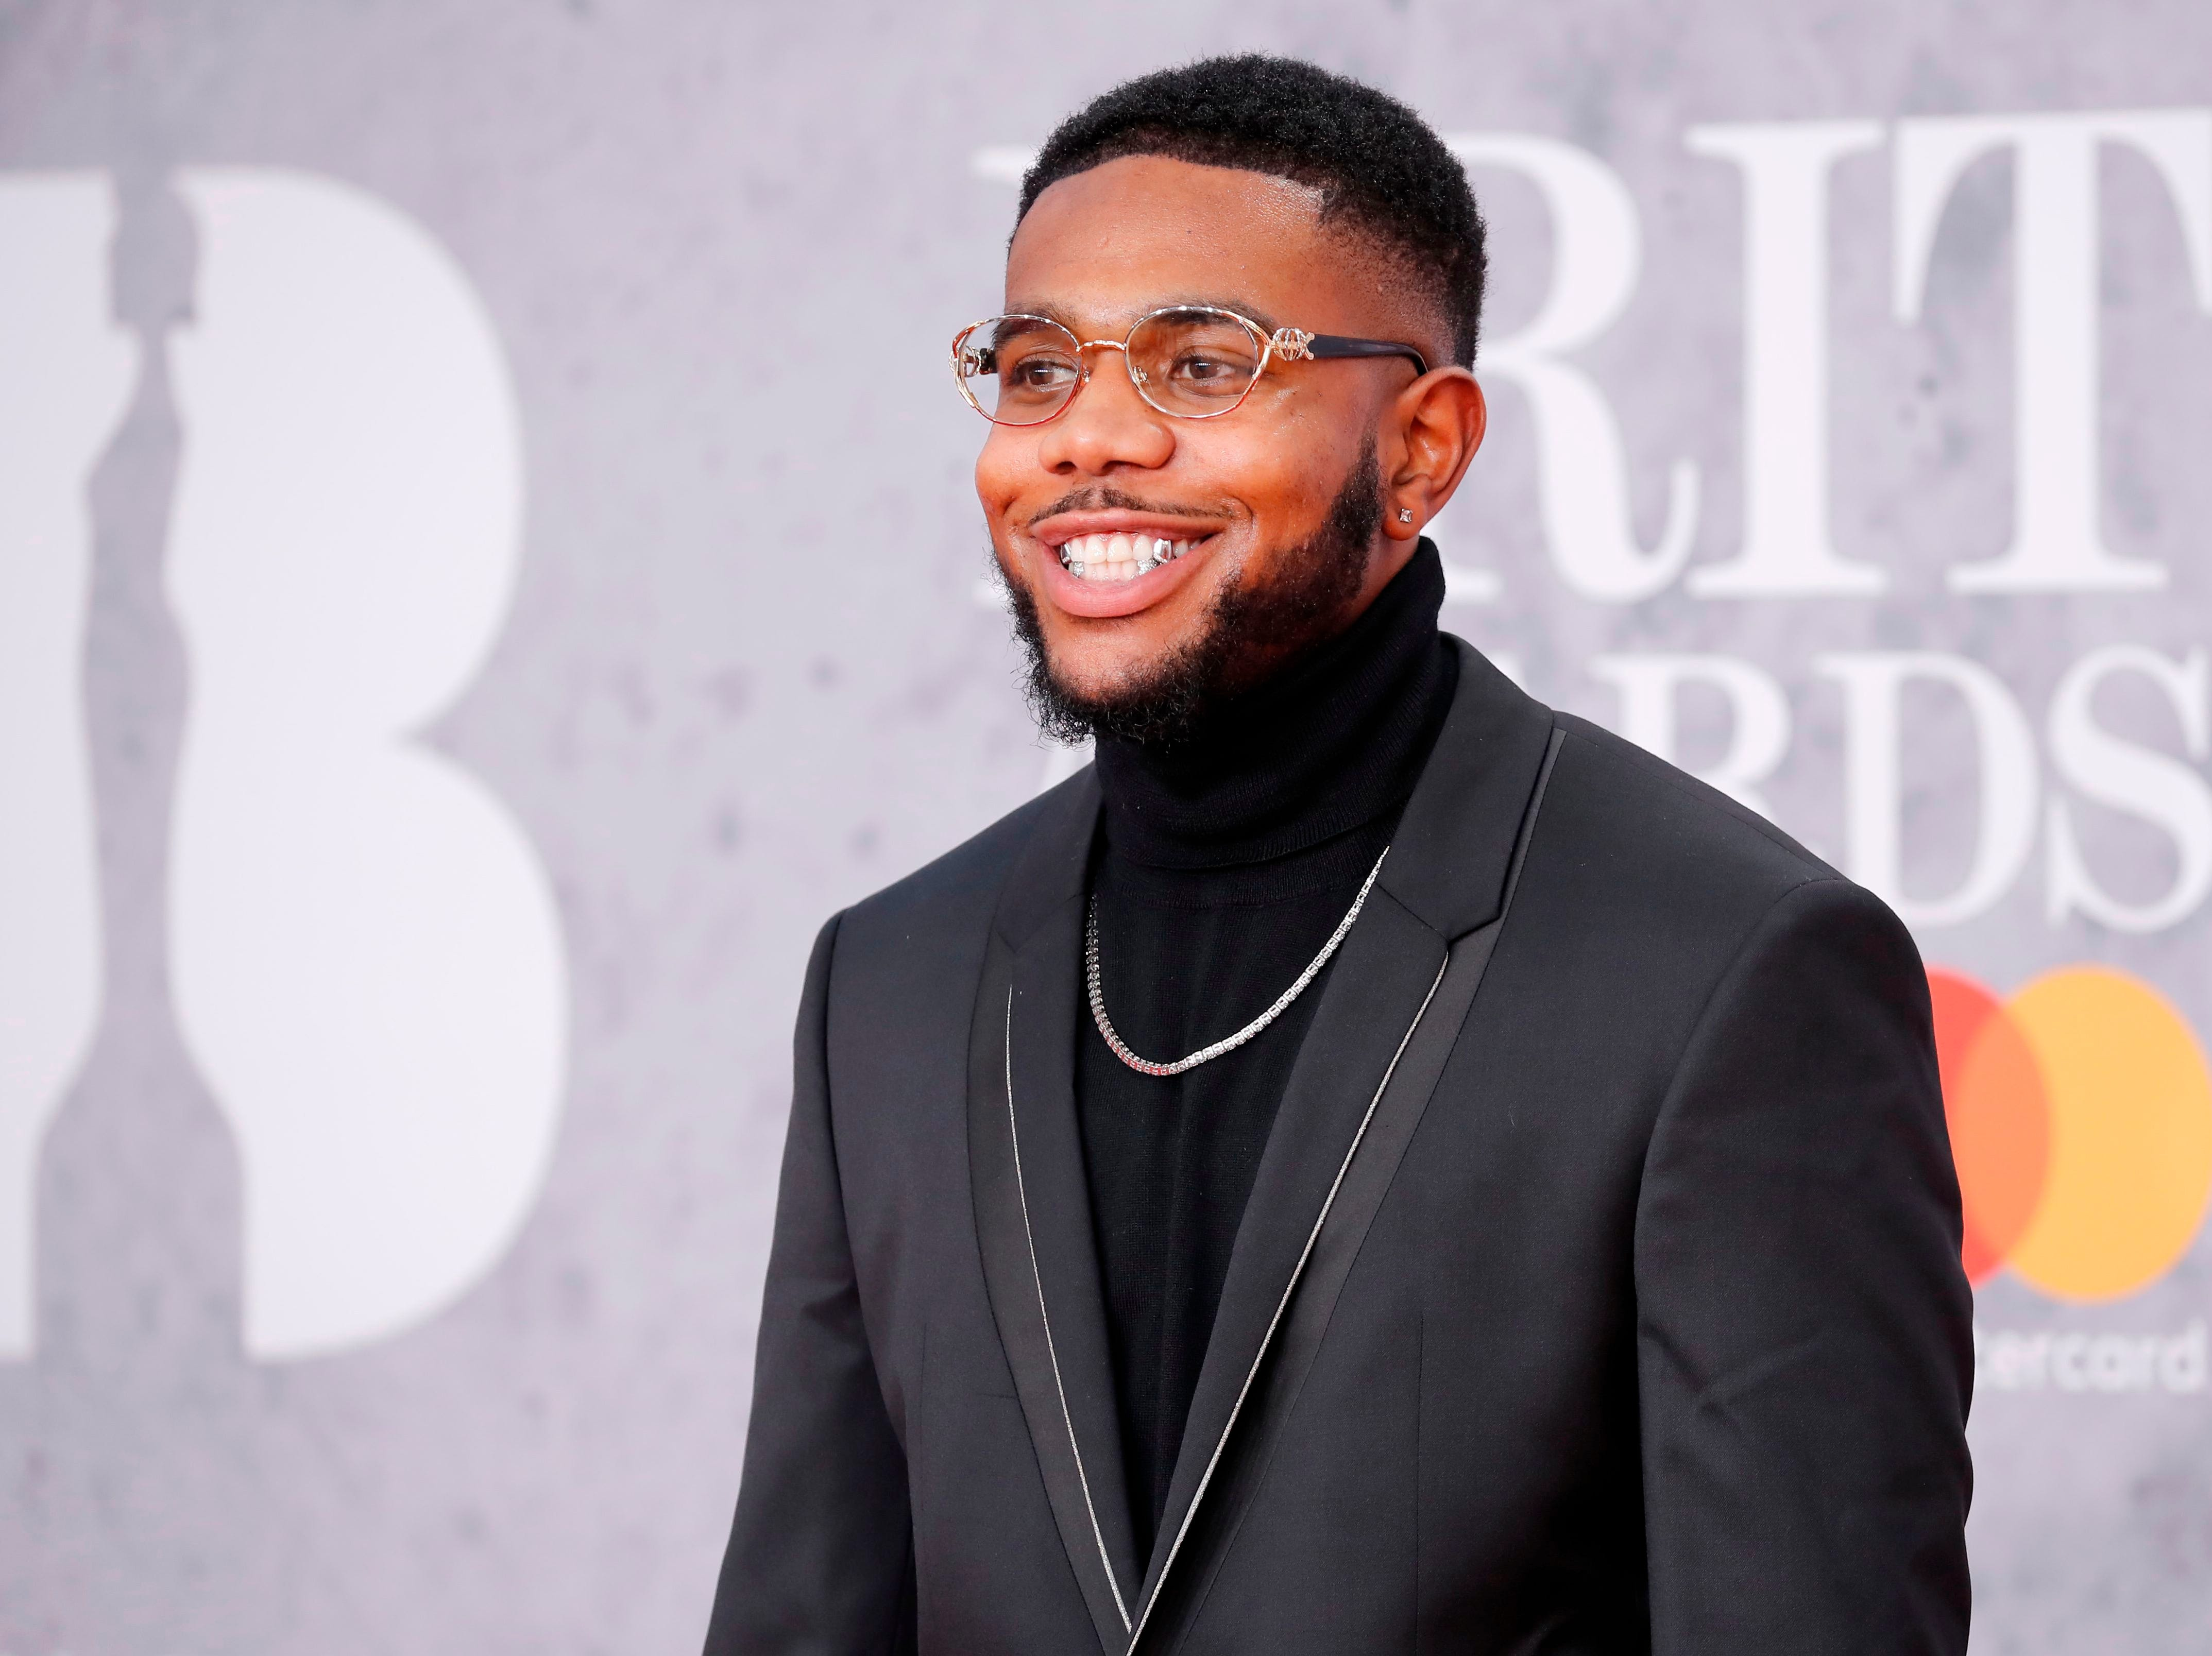 British rapper Ramz poses on the red carpet on arrival for the BRIT Awards 2019 in London on February 20, 2019. (Photo by Tolga AKMEN / AFP) / RESTRICTED TO EDITORIAL USE  NO POSTERS  NO MERCHANDISE NO USE IN PUBLICATIONS DEVOTED TO ARTISTSTOLGA AKMEN/AFP/Getty Images ORIG FILE ID: AFP_1DO08J